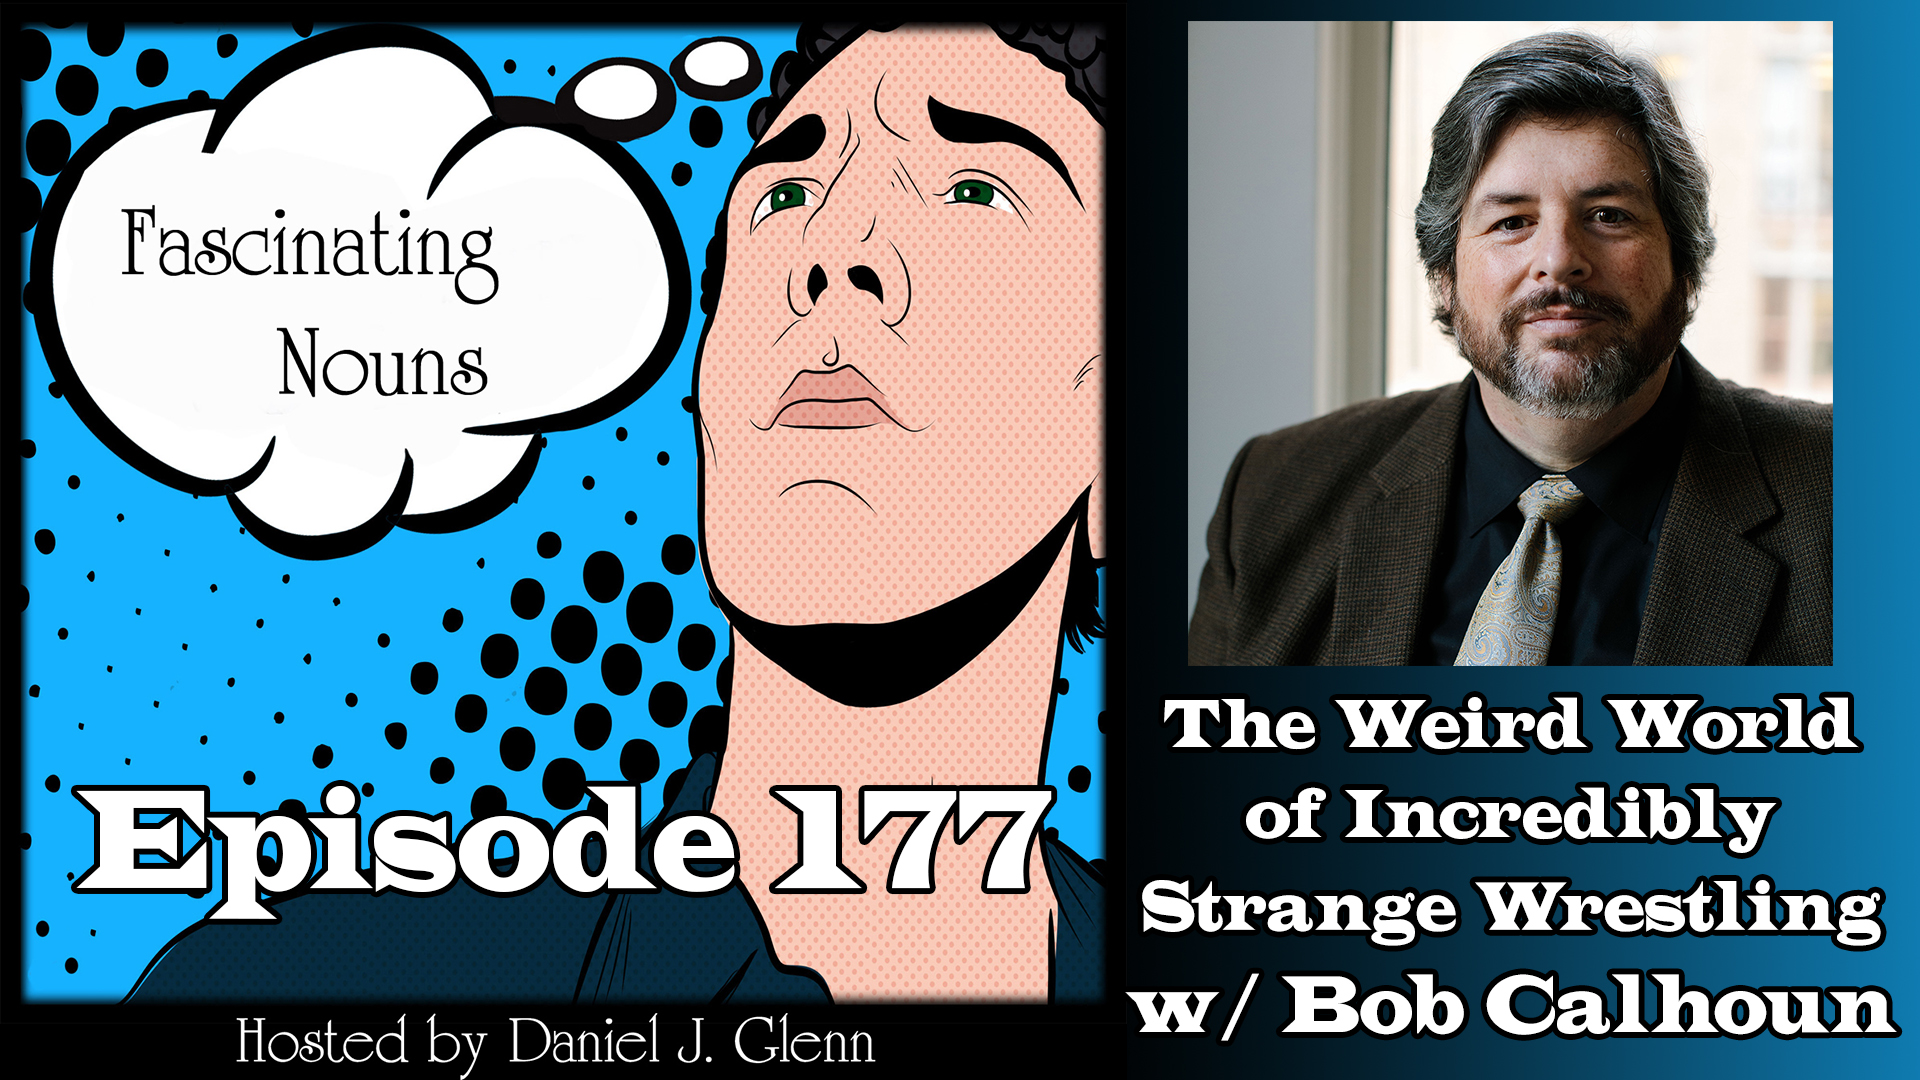 Ep. 177:  The Weird World of Incredibly Strange Wrestling